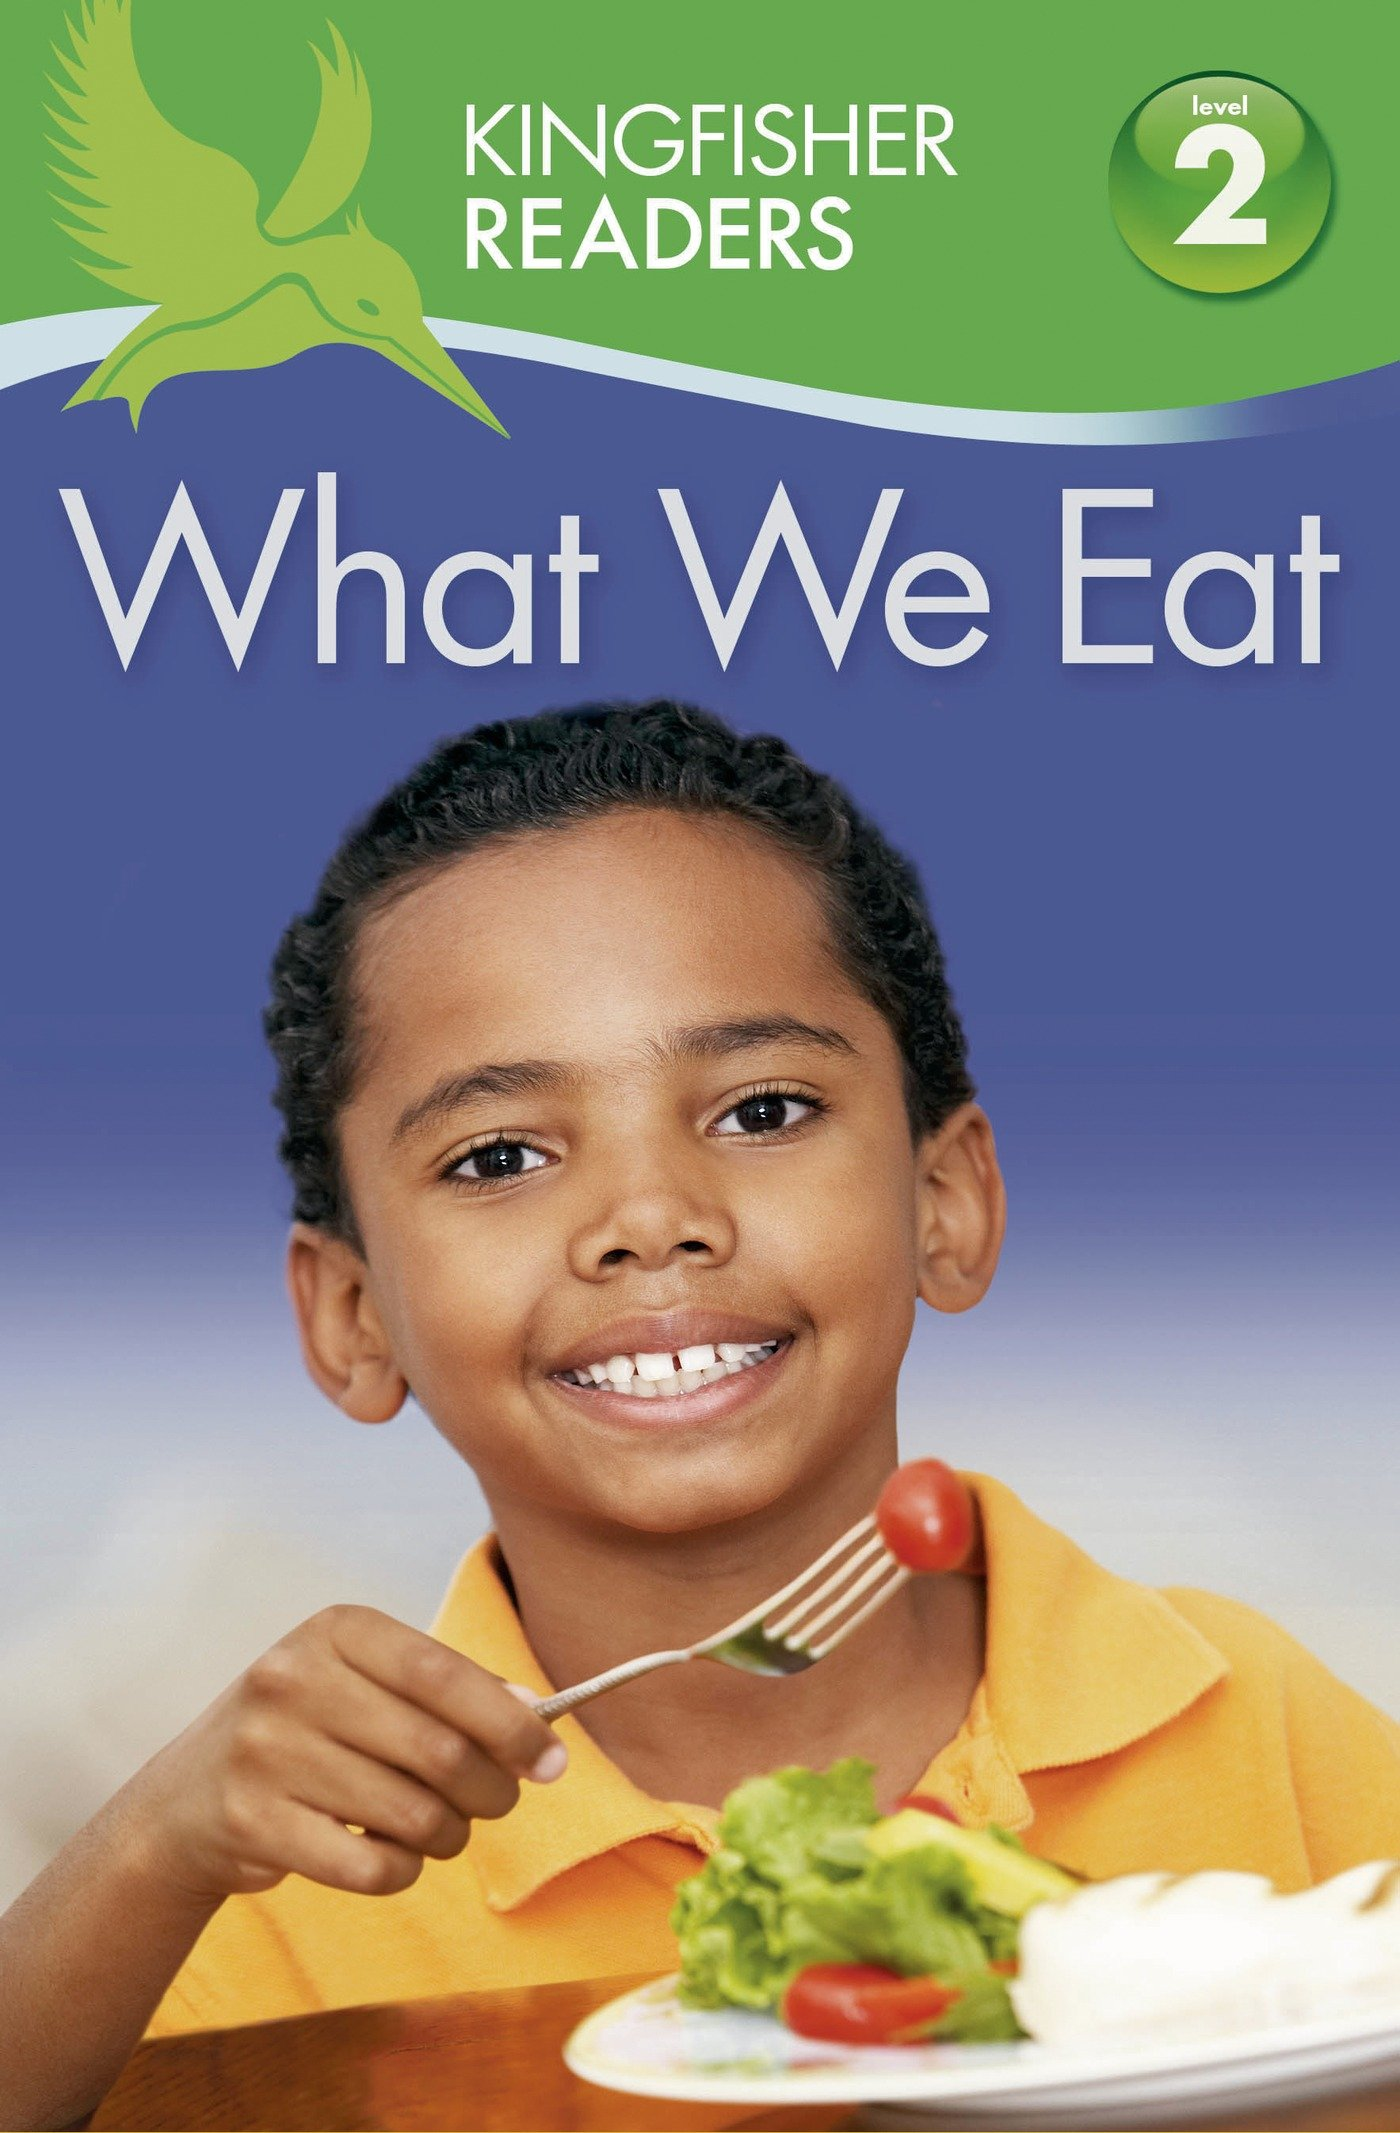 What We Eat (Kingfisher Readers Level 2)